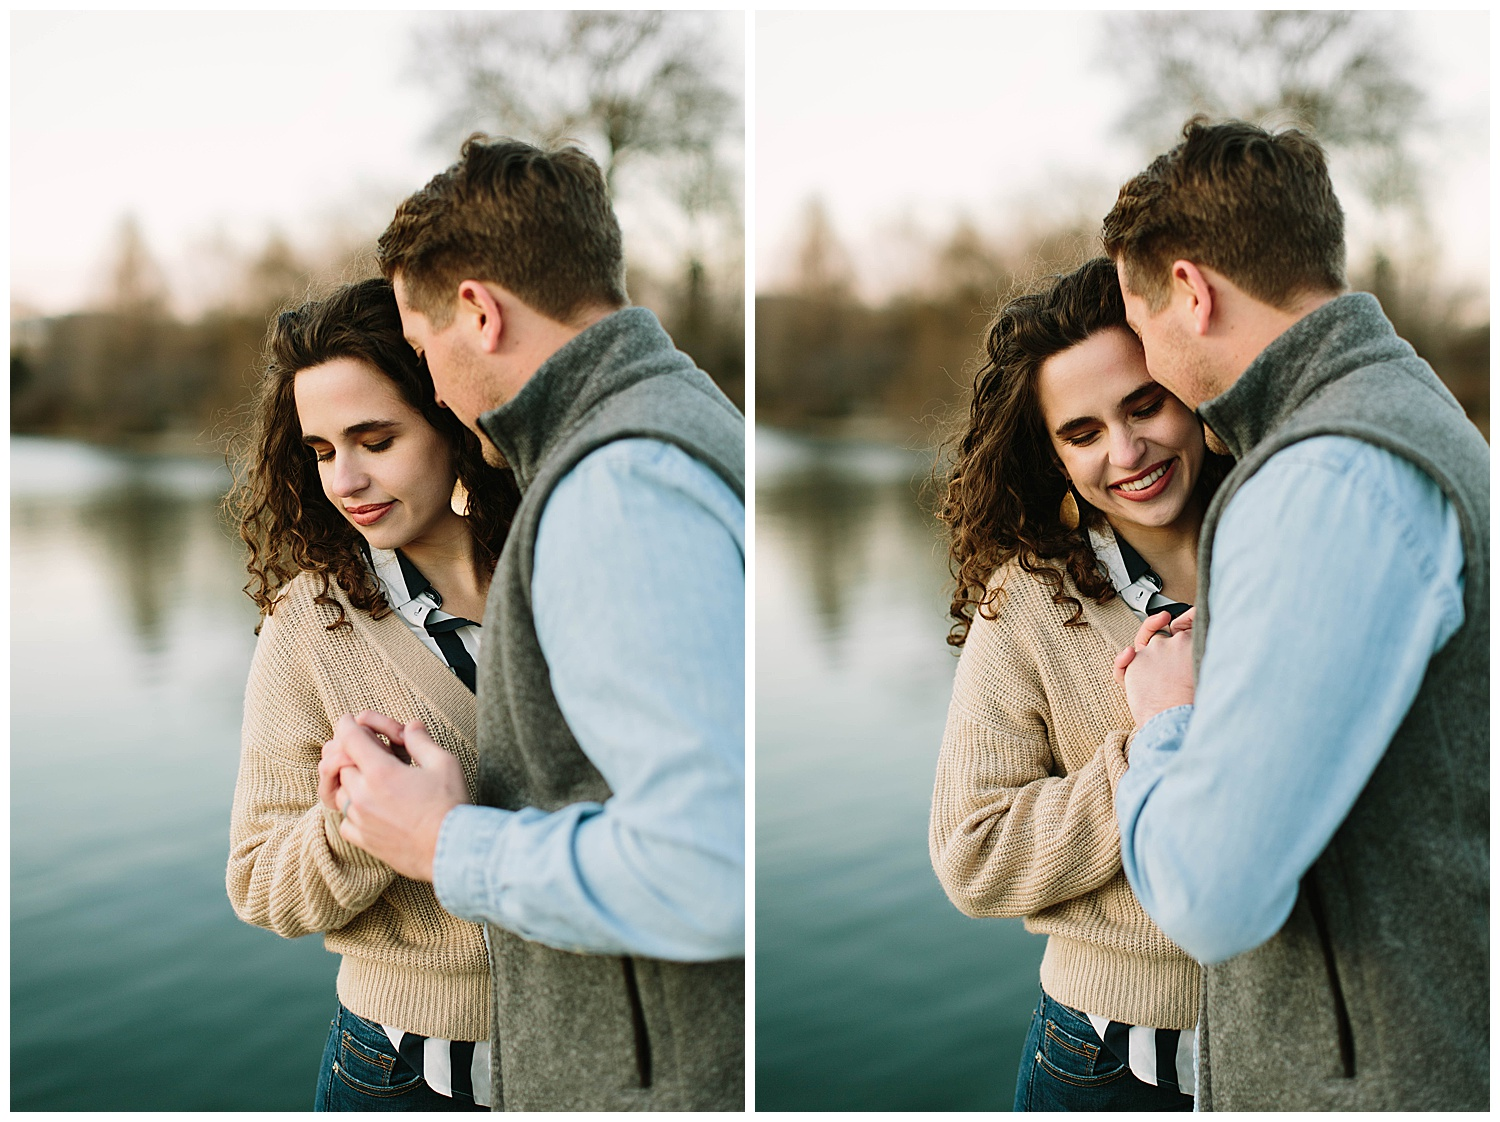 trent.and.kendra.photography.louisville.story-35.jpg